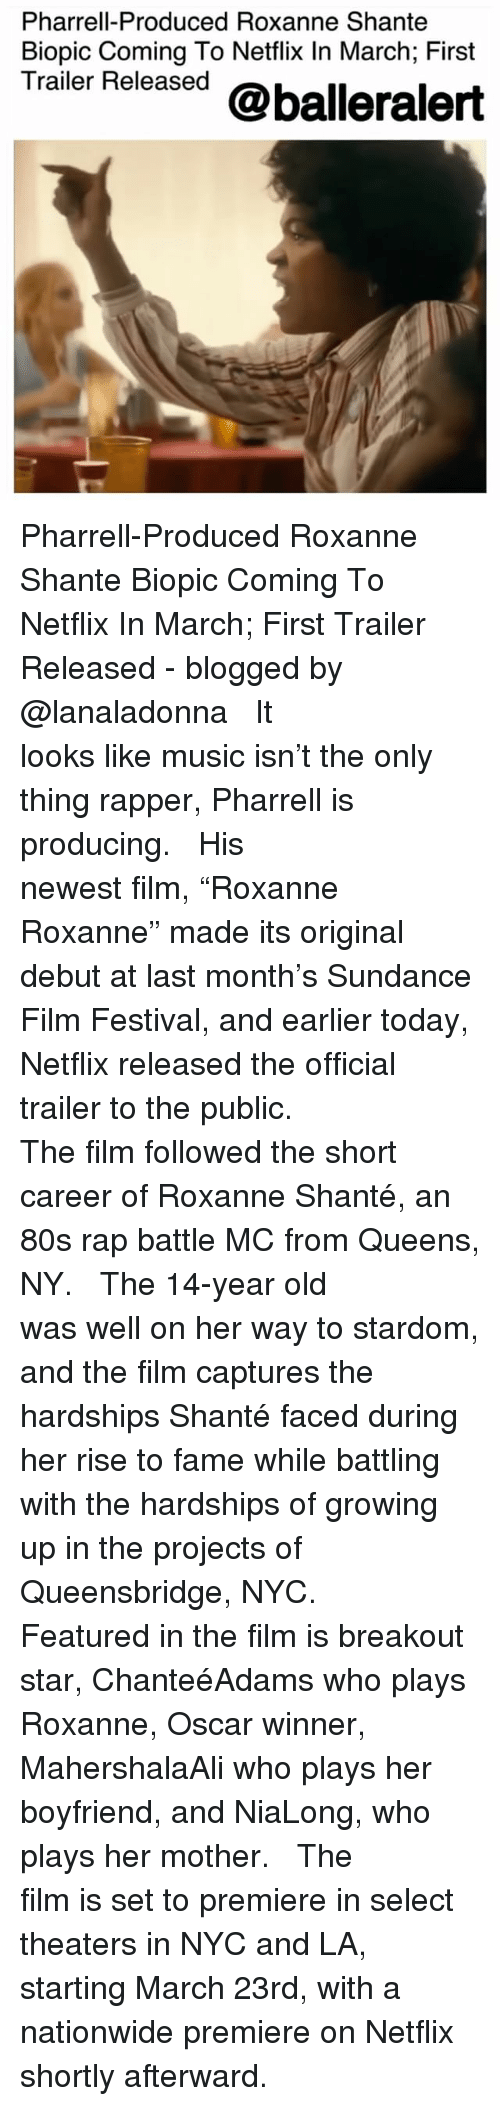 "80s, Growing Up, and Memes: Pharrell-Produced Roxanne Shante  Biopic Coming To Netflix In March; First  Trailer Released @balleralert Pharrell-Produced Roxanne Shante Biopic Coming To Netflix In March; First Trailer Released - blogged by @lanaladonna ⠀⠀⠀⠀⠀⠀⠀ ⠀⠀⠀⠀⠀⠀⠀ It looks like music isn't the only thing rapper, Pharrell is producing. ⠀⠀⠀⠀⠀⠀⠀ ⠀⠀⠀⠀⠀⠀⠀ His newest film, ""Roxanne Roxanne"" made its original debut at last month's Sundance Film Festival, and earlier today, Netflix released the official trailer to the public. ⠀⠀⠀⠀⠀⠀⠀ ⠀⠀⠀⠀⠀⠀⠀ The film followed the short career of Roxanne Shanté, an 80s rap battle MC from Queens, NY. ⠀⠀⠀⠀⠀⠀⠀ ⠀⠀⠀⠀⠀⠀⠀ The 14-year old was well on her way to stardom, and the film captures the hardships Shanté faced during her rise to fame while battling with the hardships of growing up in the projects of Queensbridge, NYC. ⠀⠀⠀⠀⠀⠀⠀ ⠀⠀⠀⠀⠀⠀⠀ Featured in the film is breakout star, ChanteéAdams who plays Roxanne, Oscar winner, MahershalaAli who plays her boyfriend, and NiaLong, who plays her mother. ⠀⠀⠀⠀⠀⠀⠀ ⠀⠀⠀⠀⠀⠀⠀ The film is set to premiere in select theaters in NYC and LA, starting March 23rd, with a nationwide premiere on Netflix shortly afterward."